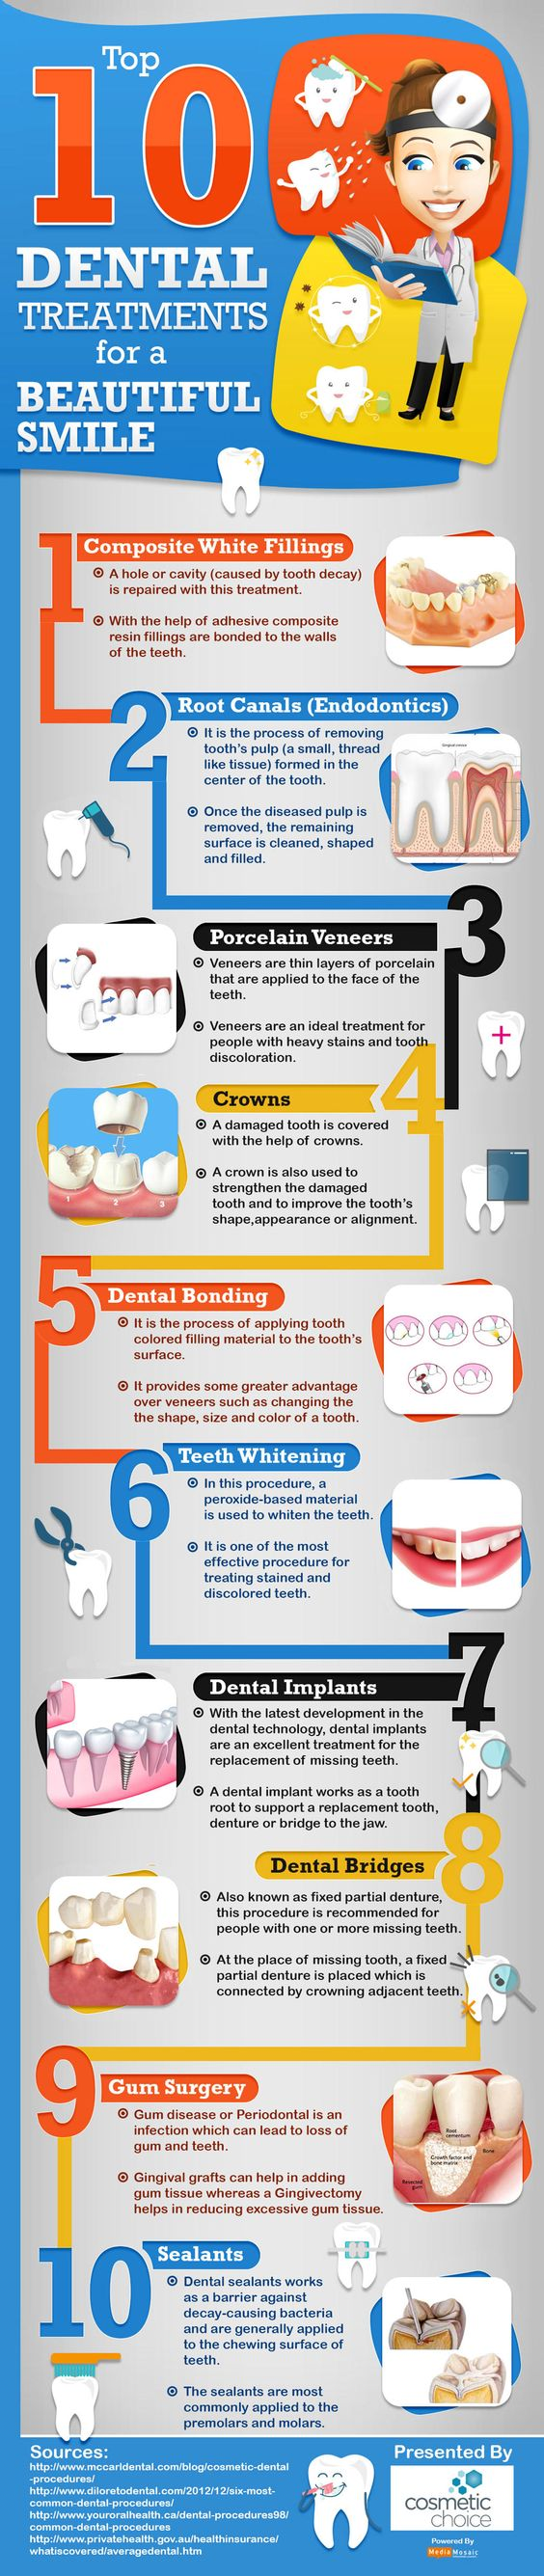 5 Dental Tips for a Beautiful Smile